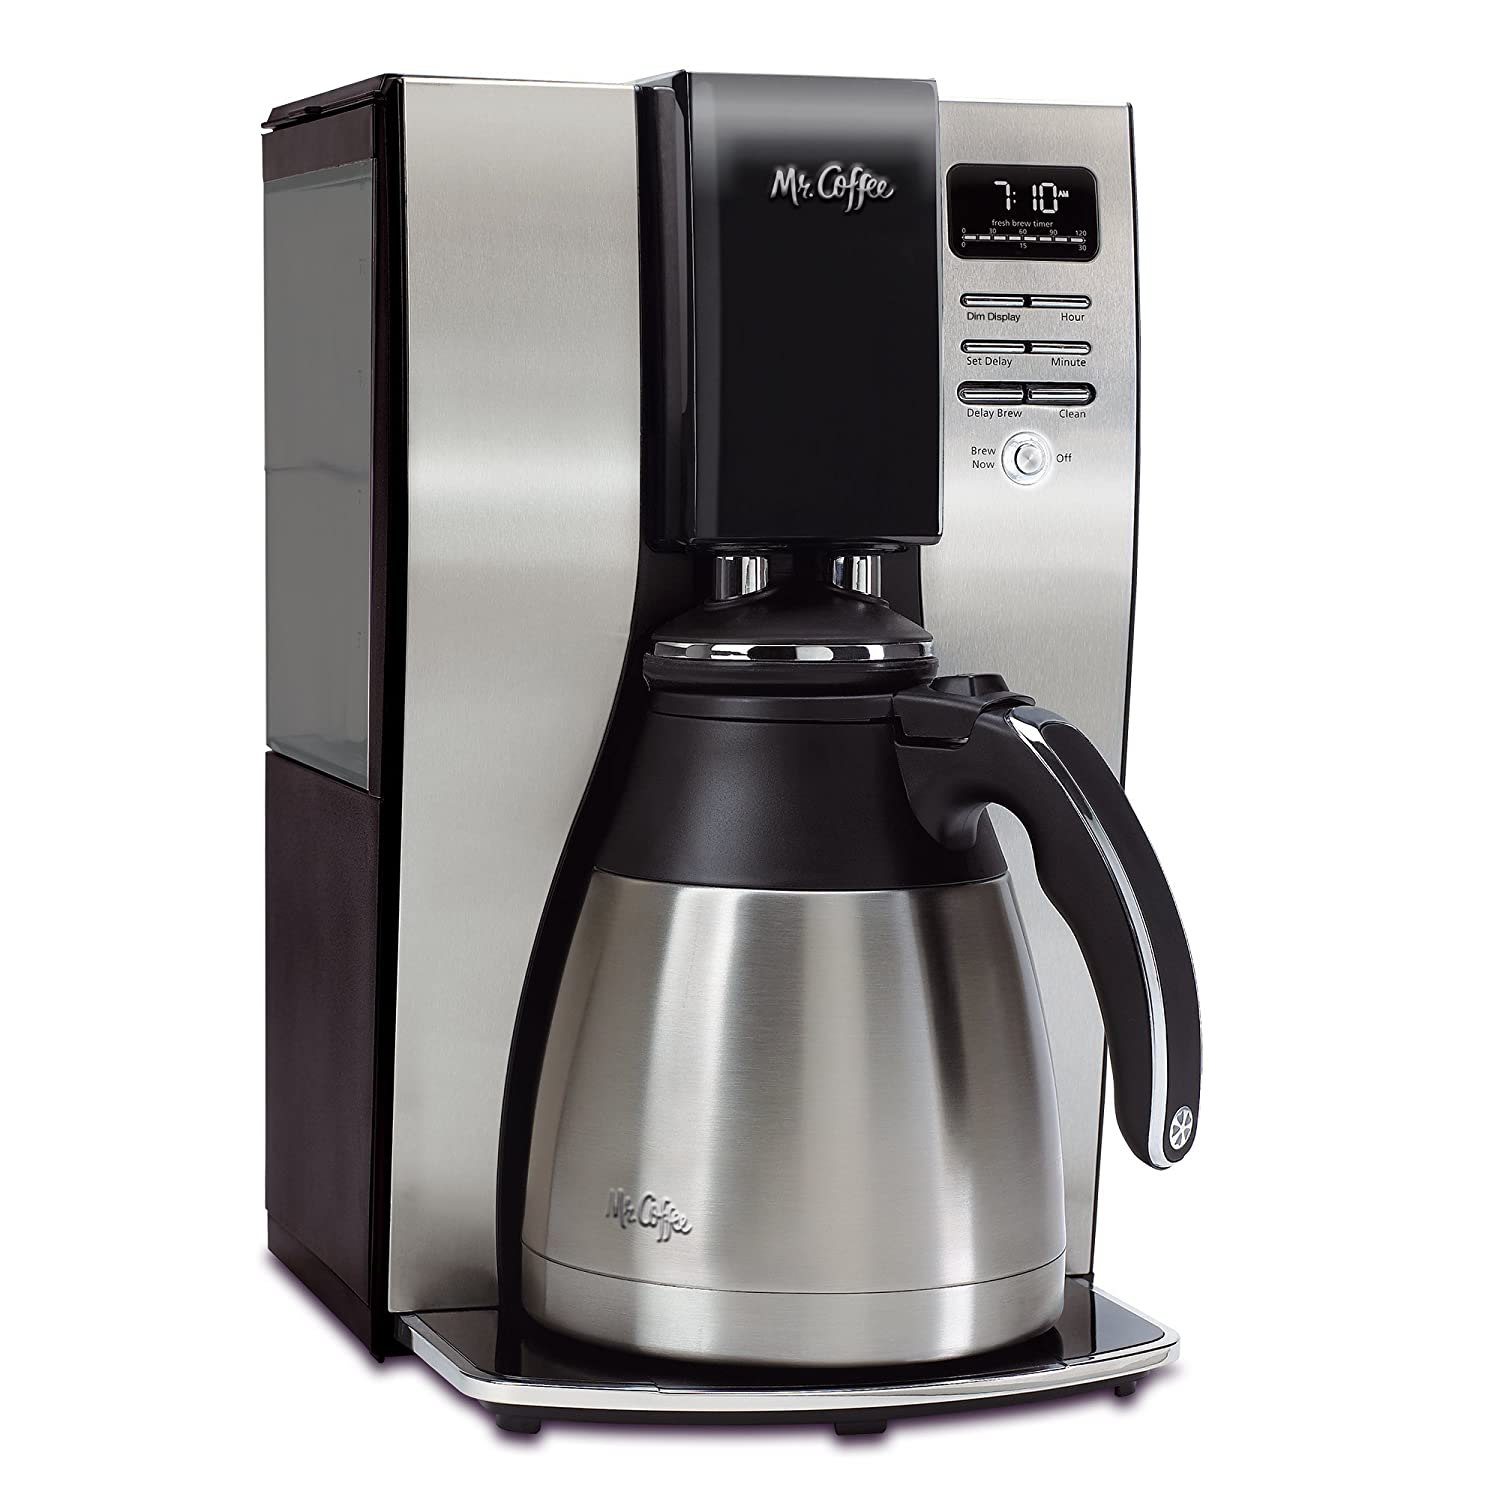 Mr. Coffee Optimal Brew 10-Cup Thermal Coffeemaker System, BVMC-PSTX91-RB (Certified Refurbished)